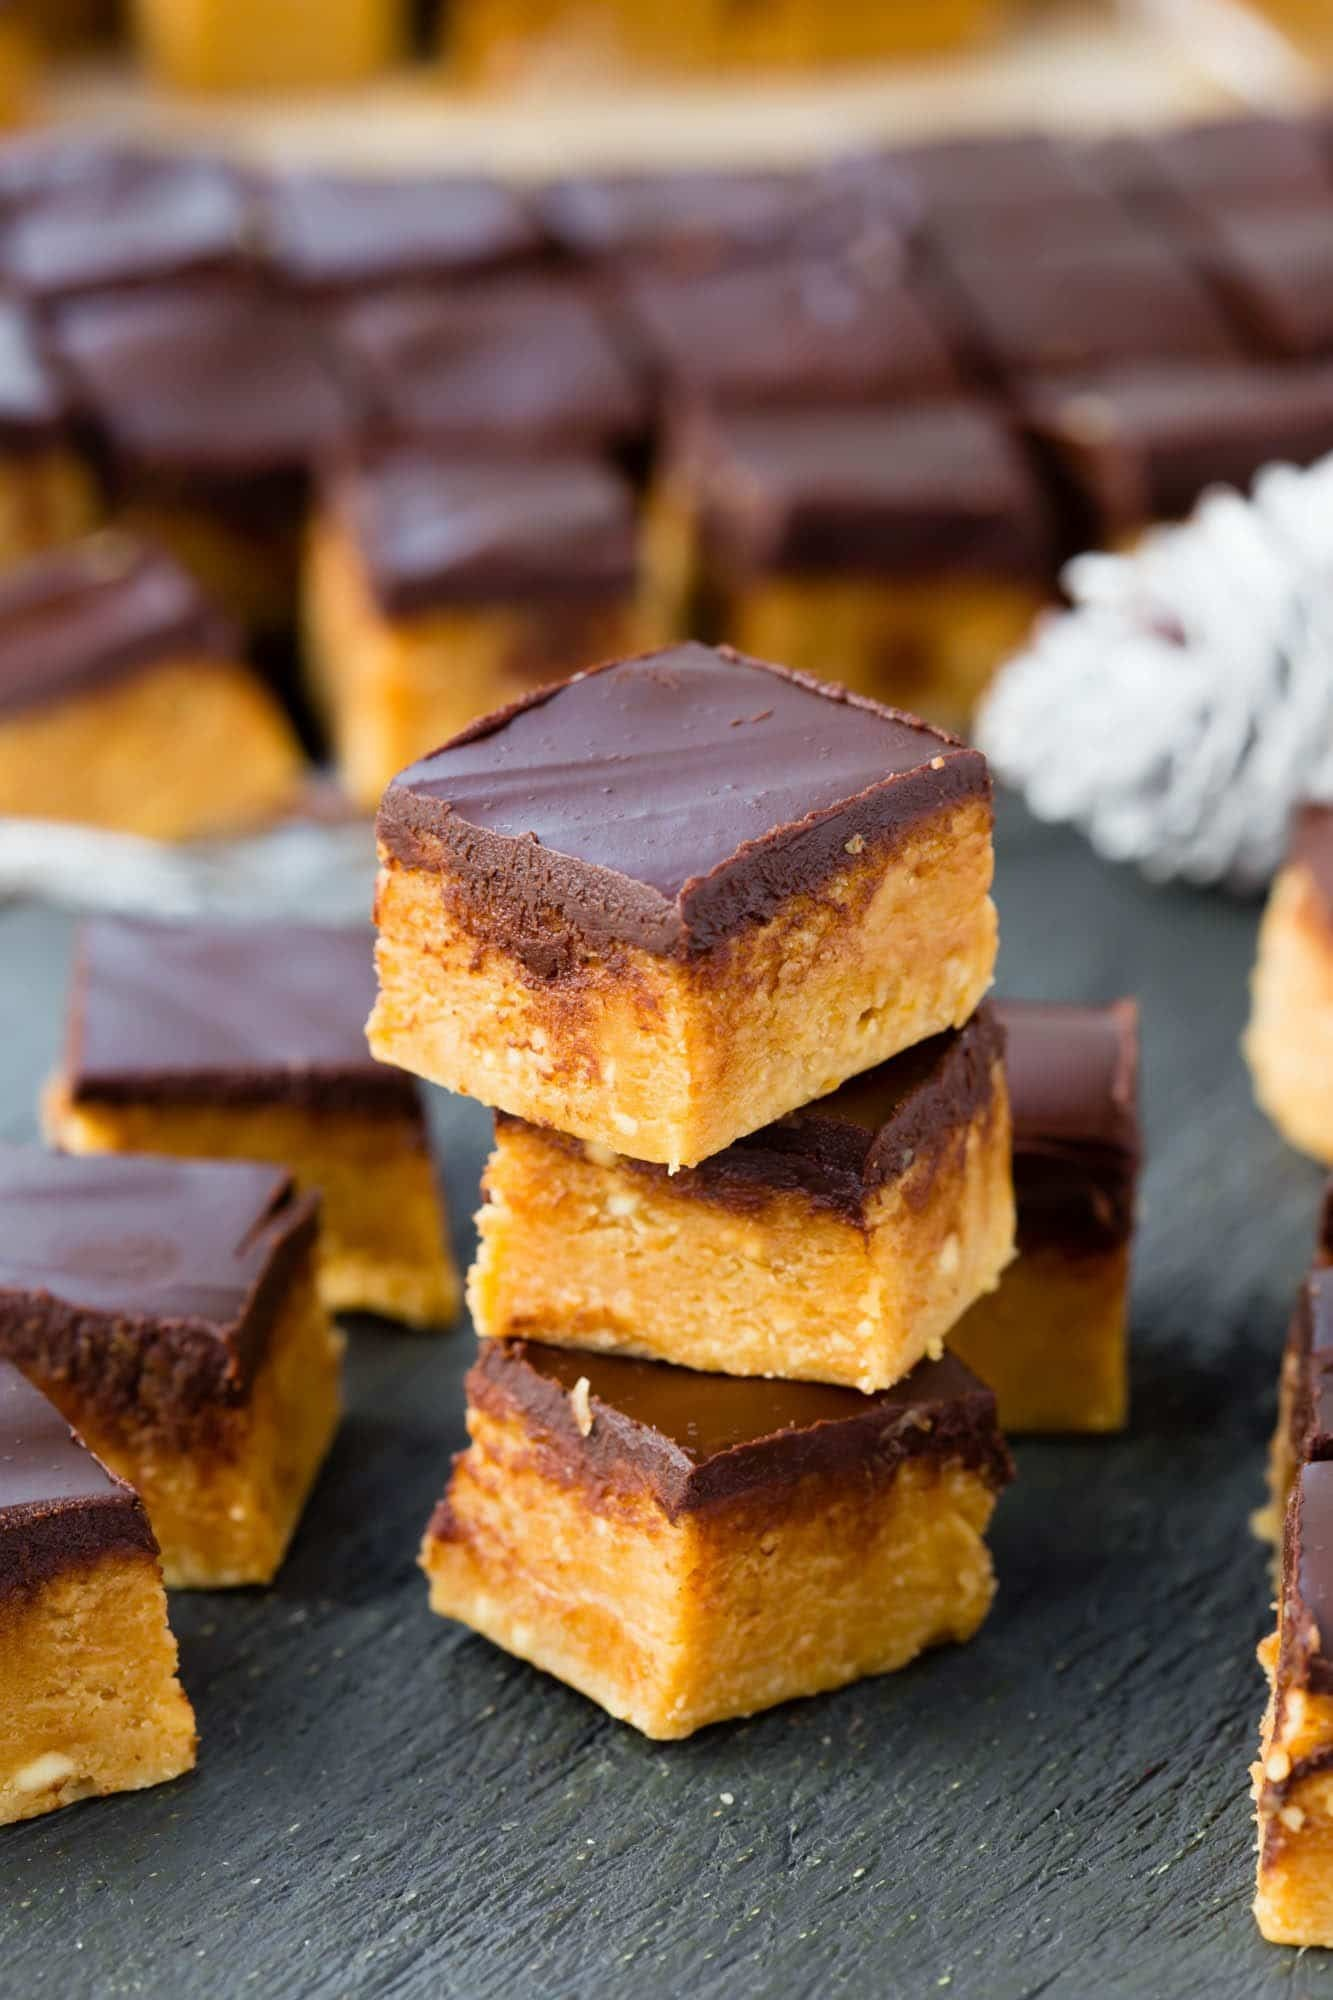 Thermomix Peanut Butter Chocolate Fudge